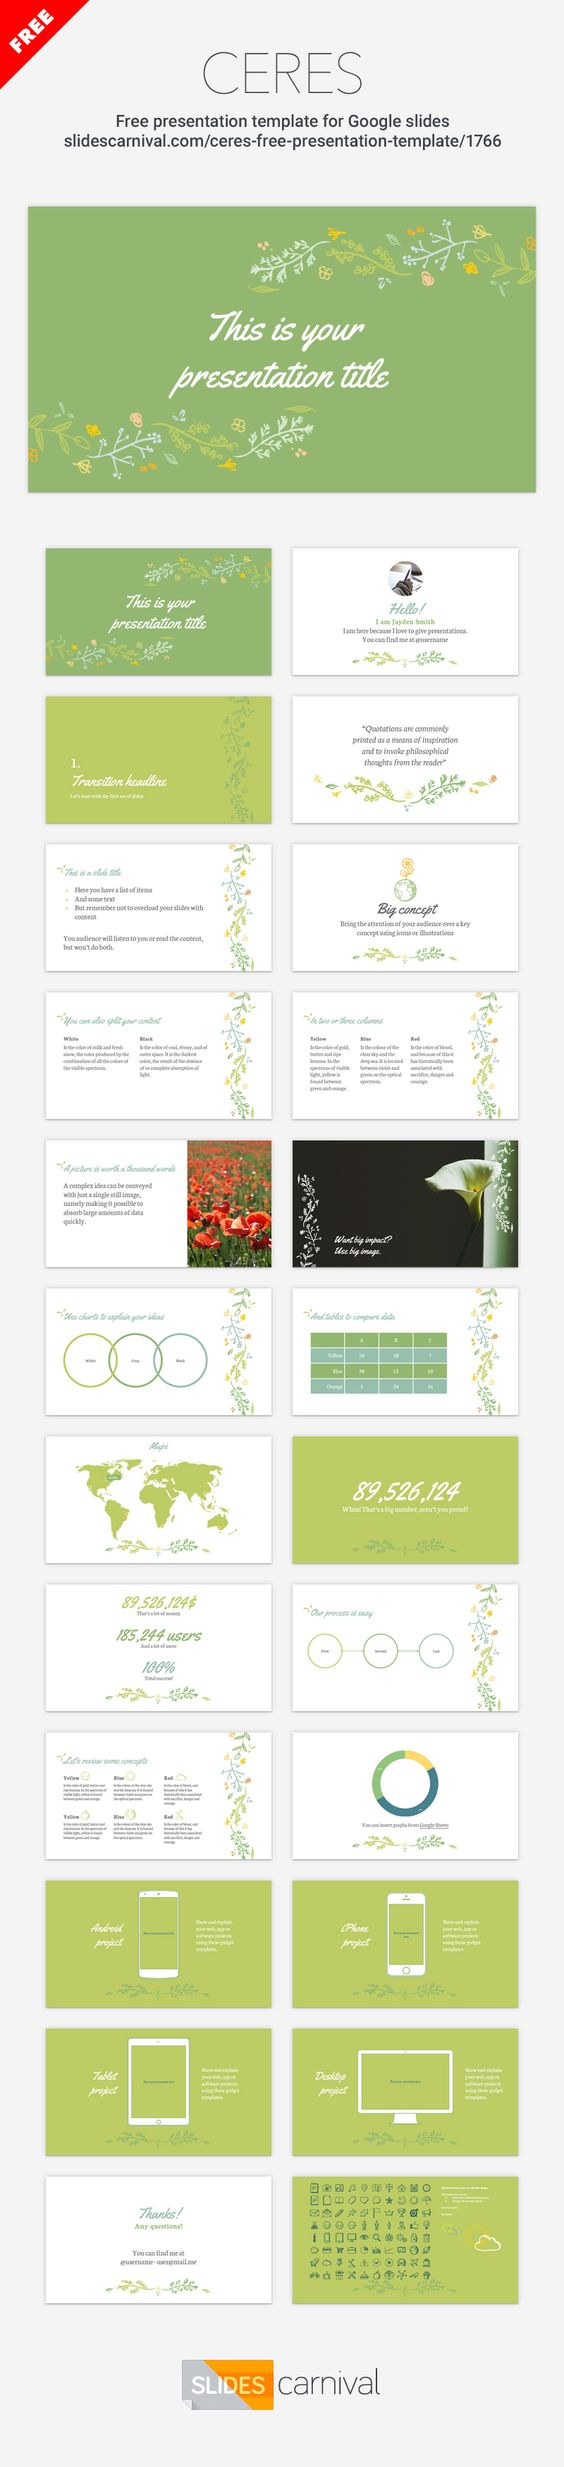 Indezine Powerpoint Templates Images - Templates Example Free Download